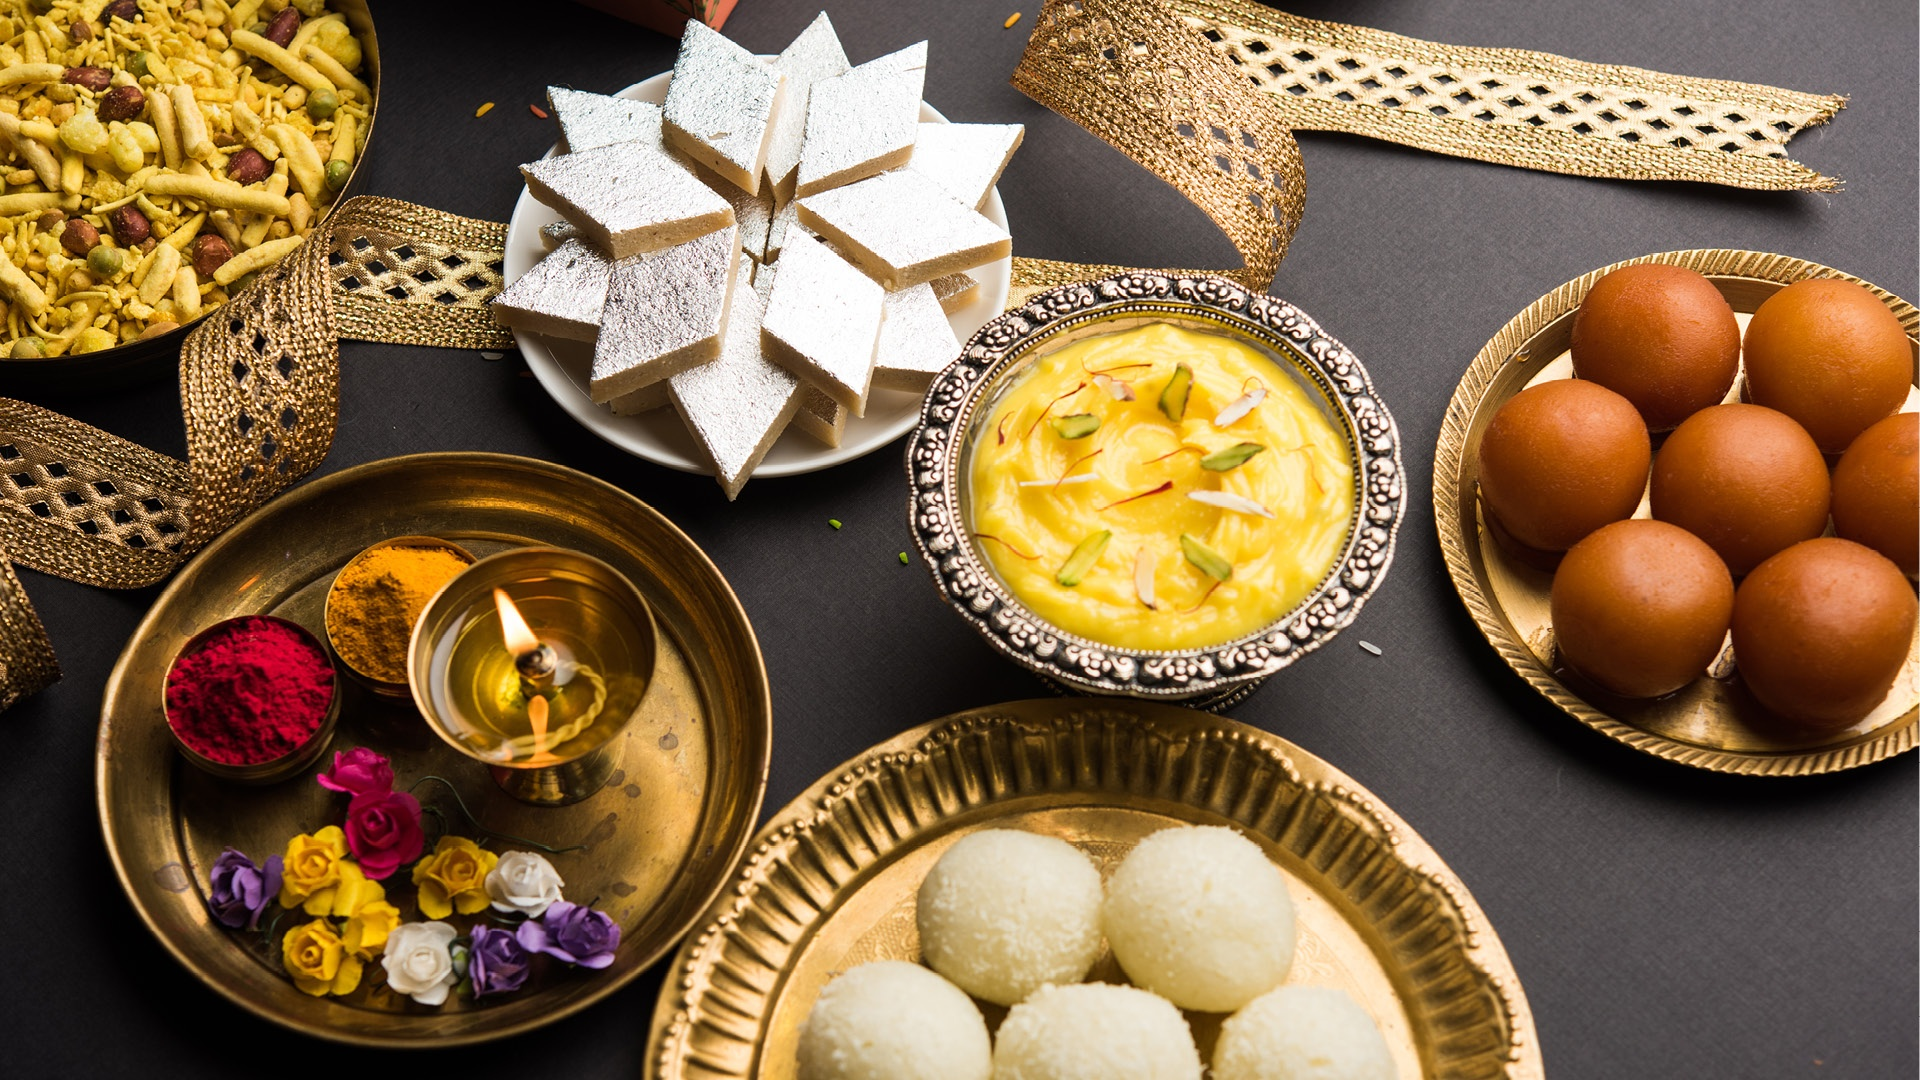 Best Five sweets that you can give to your family and friends on Diwali. Everyone likes to eat these sweets, Sweet in Diwali, Sweet of Diwali/Deepavali, Happy Diwali 2019